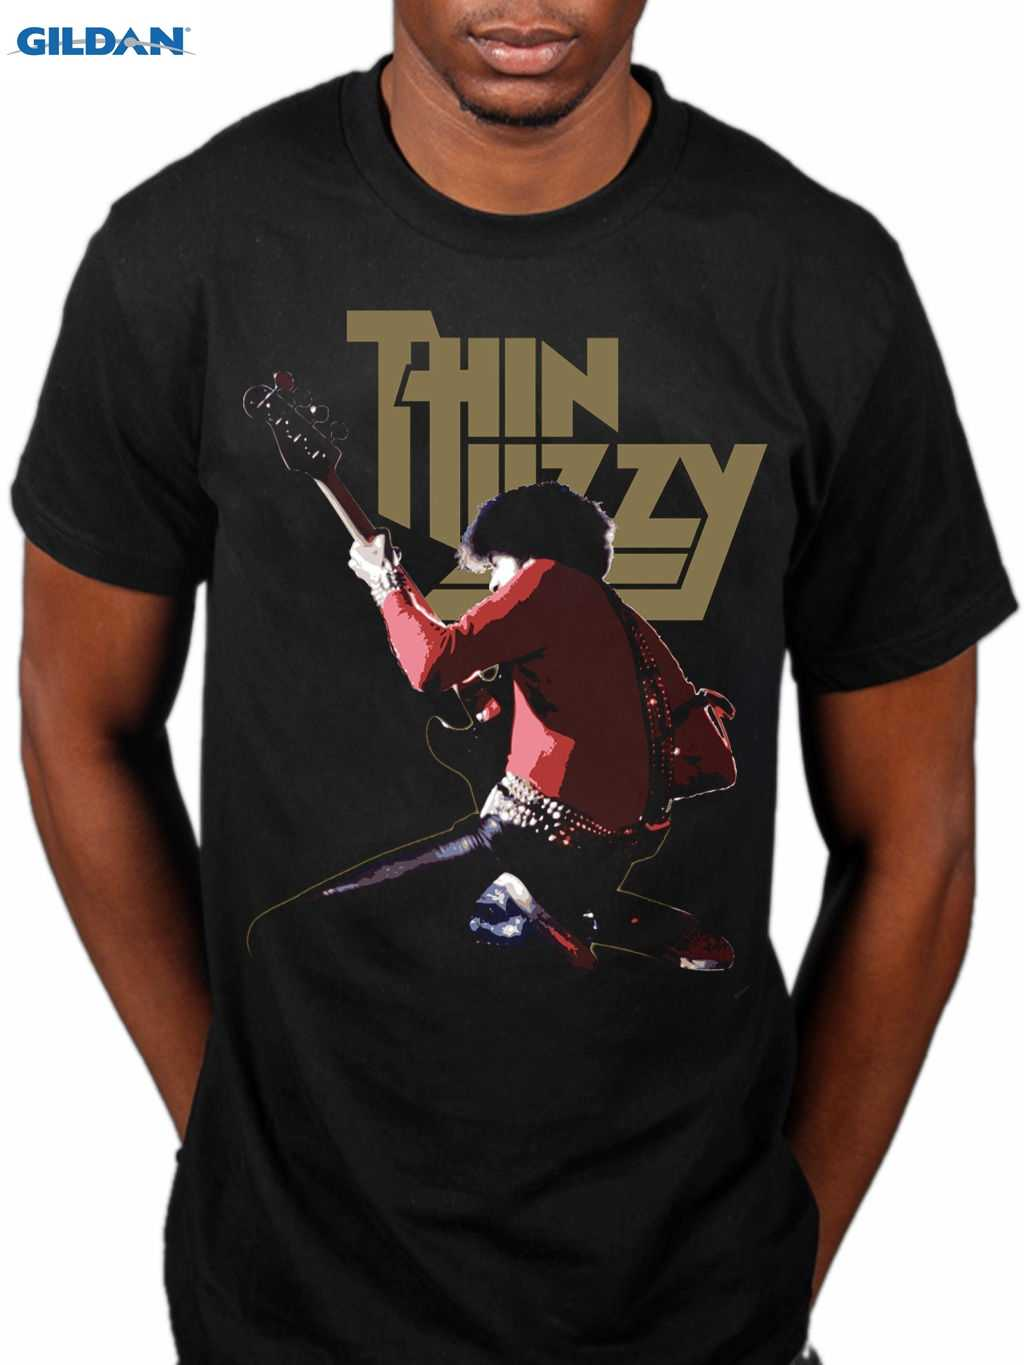 9bccbbc5d Official Thin Lizzy Phil Lynott Live Rock Band Merch Skid Row Dare Gift  Print T-